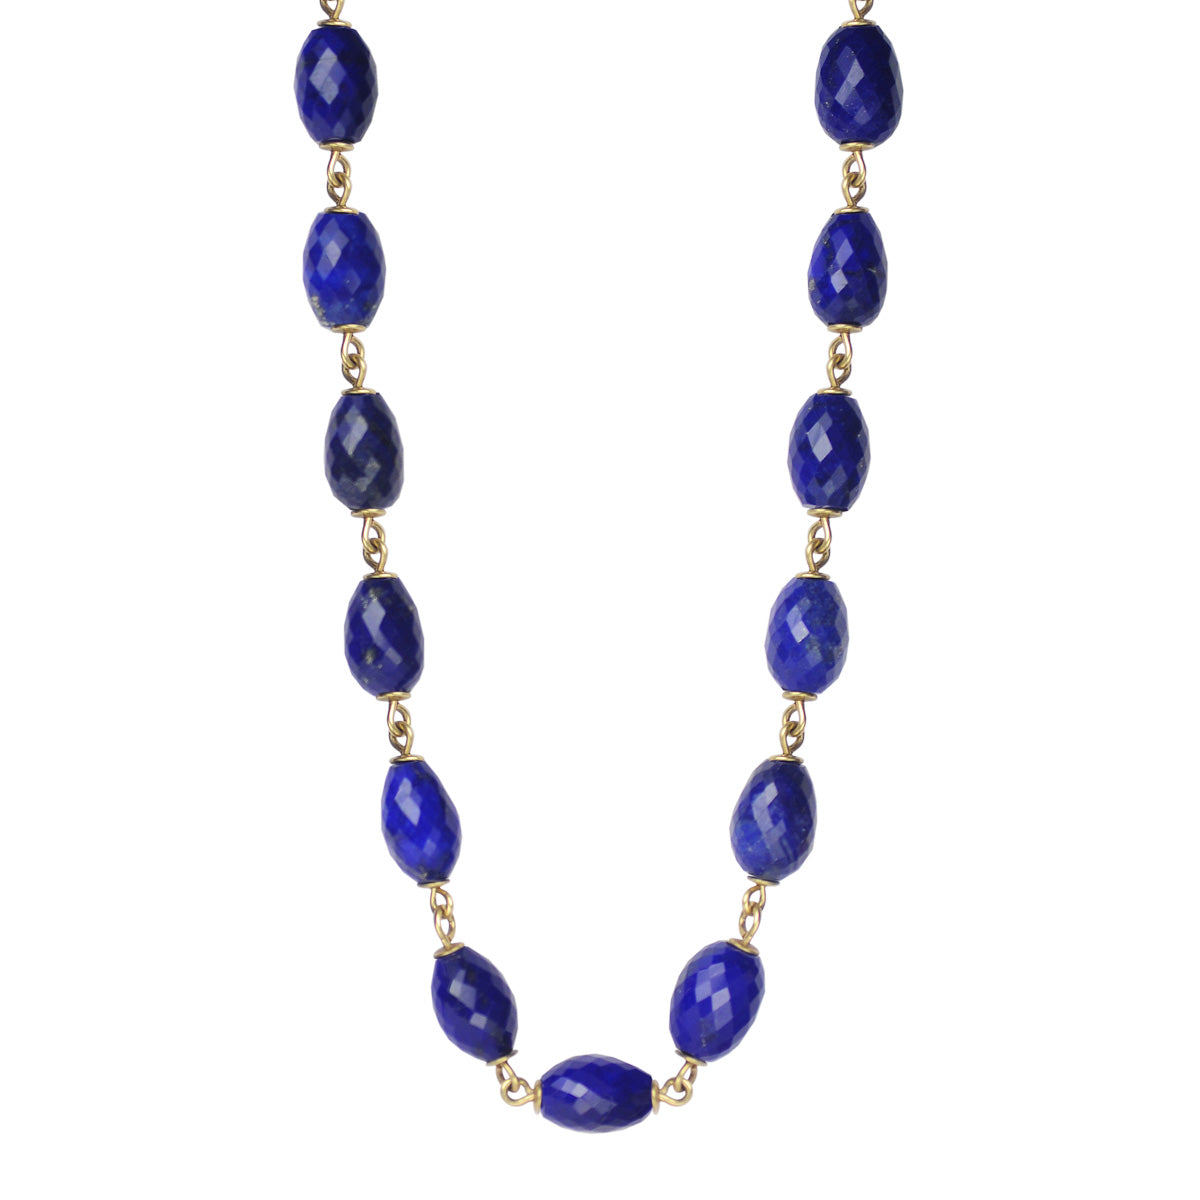 18K Gold Faceted Oval Lapis Bead Link Chain